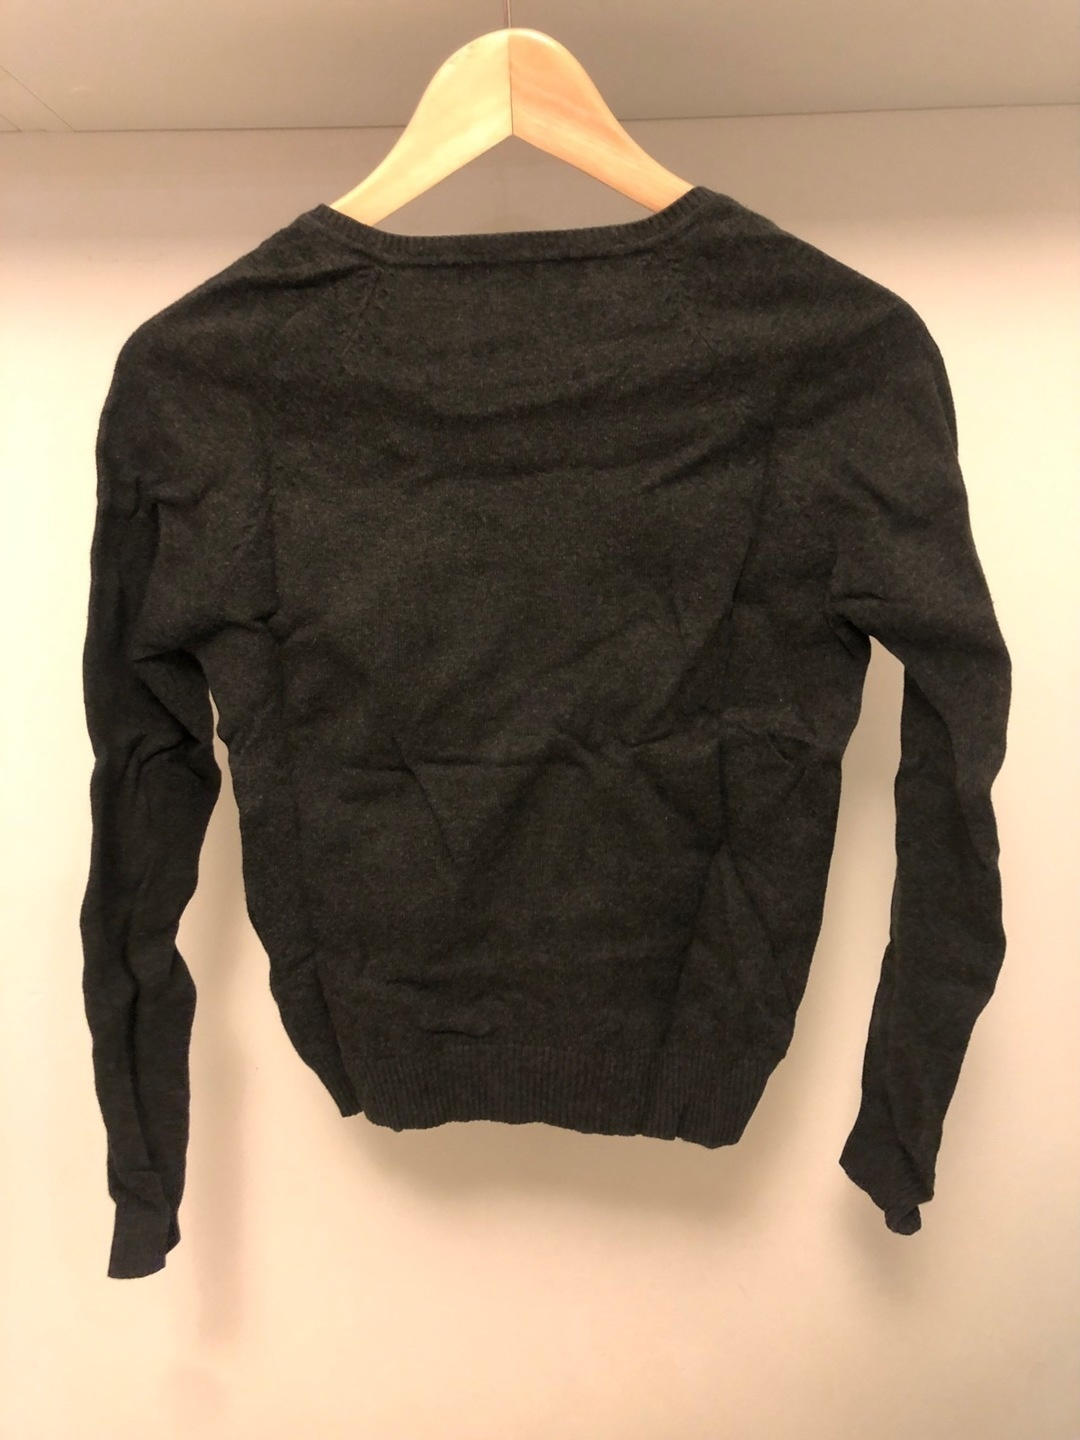 Women's jumpers & cardigans - ZARA photo 2